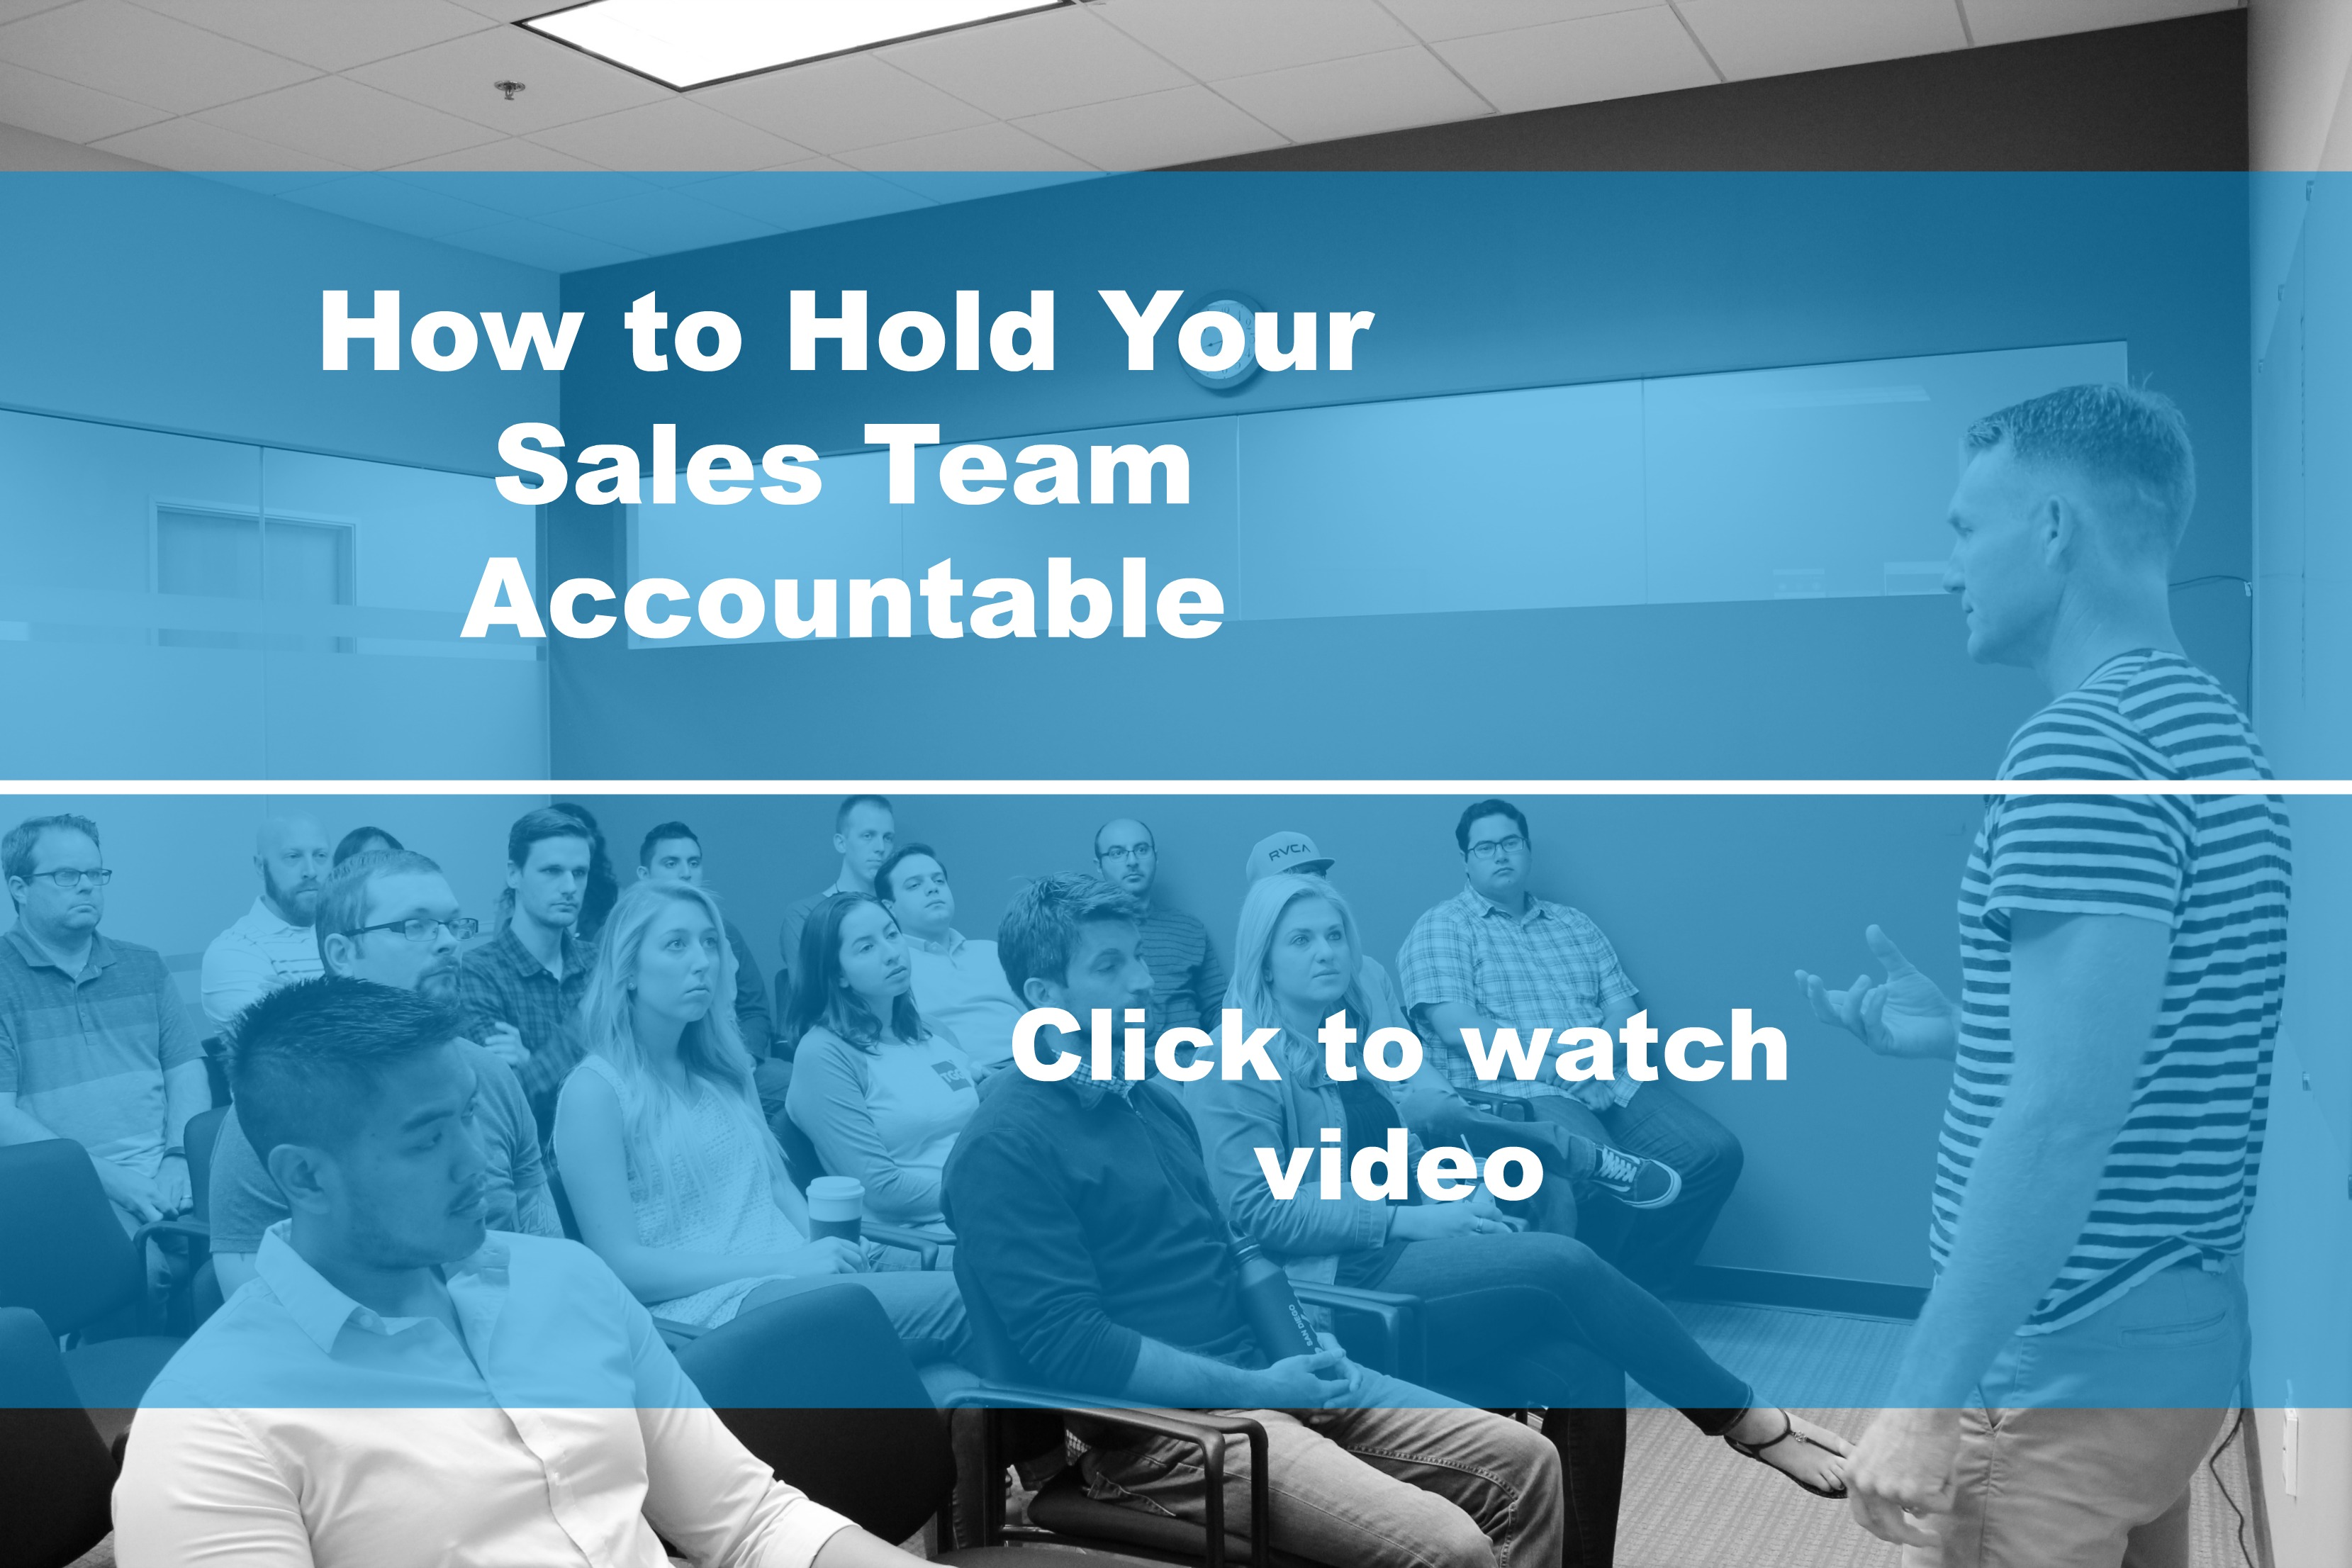 How to Hold Your Sales Team Accountable